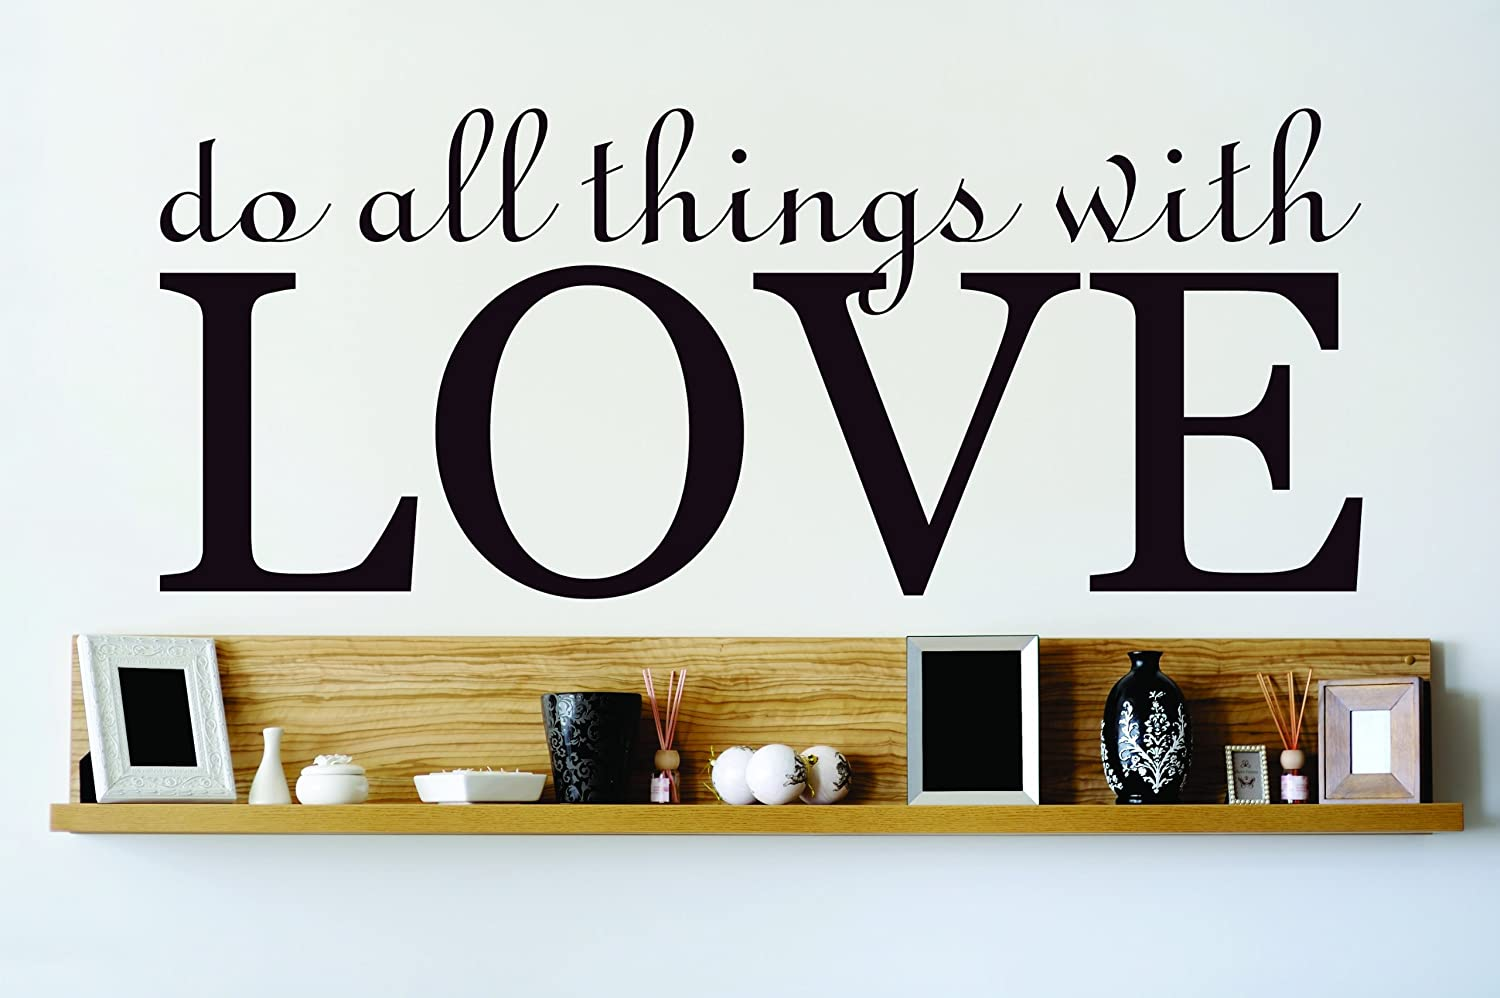 Design with Vinyl OMG 691 As Seen Do All Things with Love Quote Lettering Decal Home Decor Kitchen Living Room Bathroom, 8 x 30-Inch by Design with Vinyl B00J6AXMNW